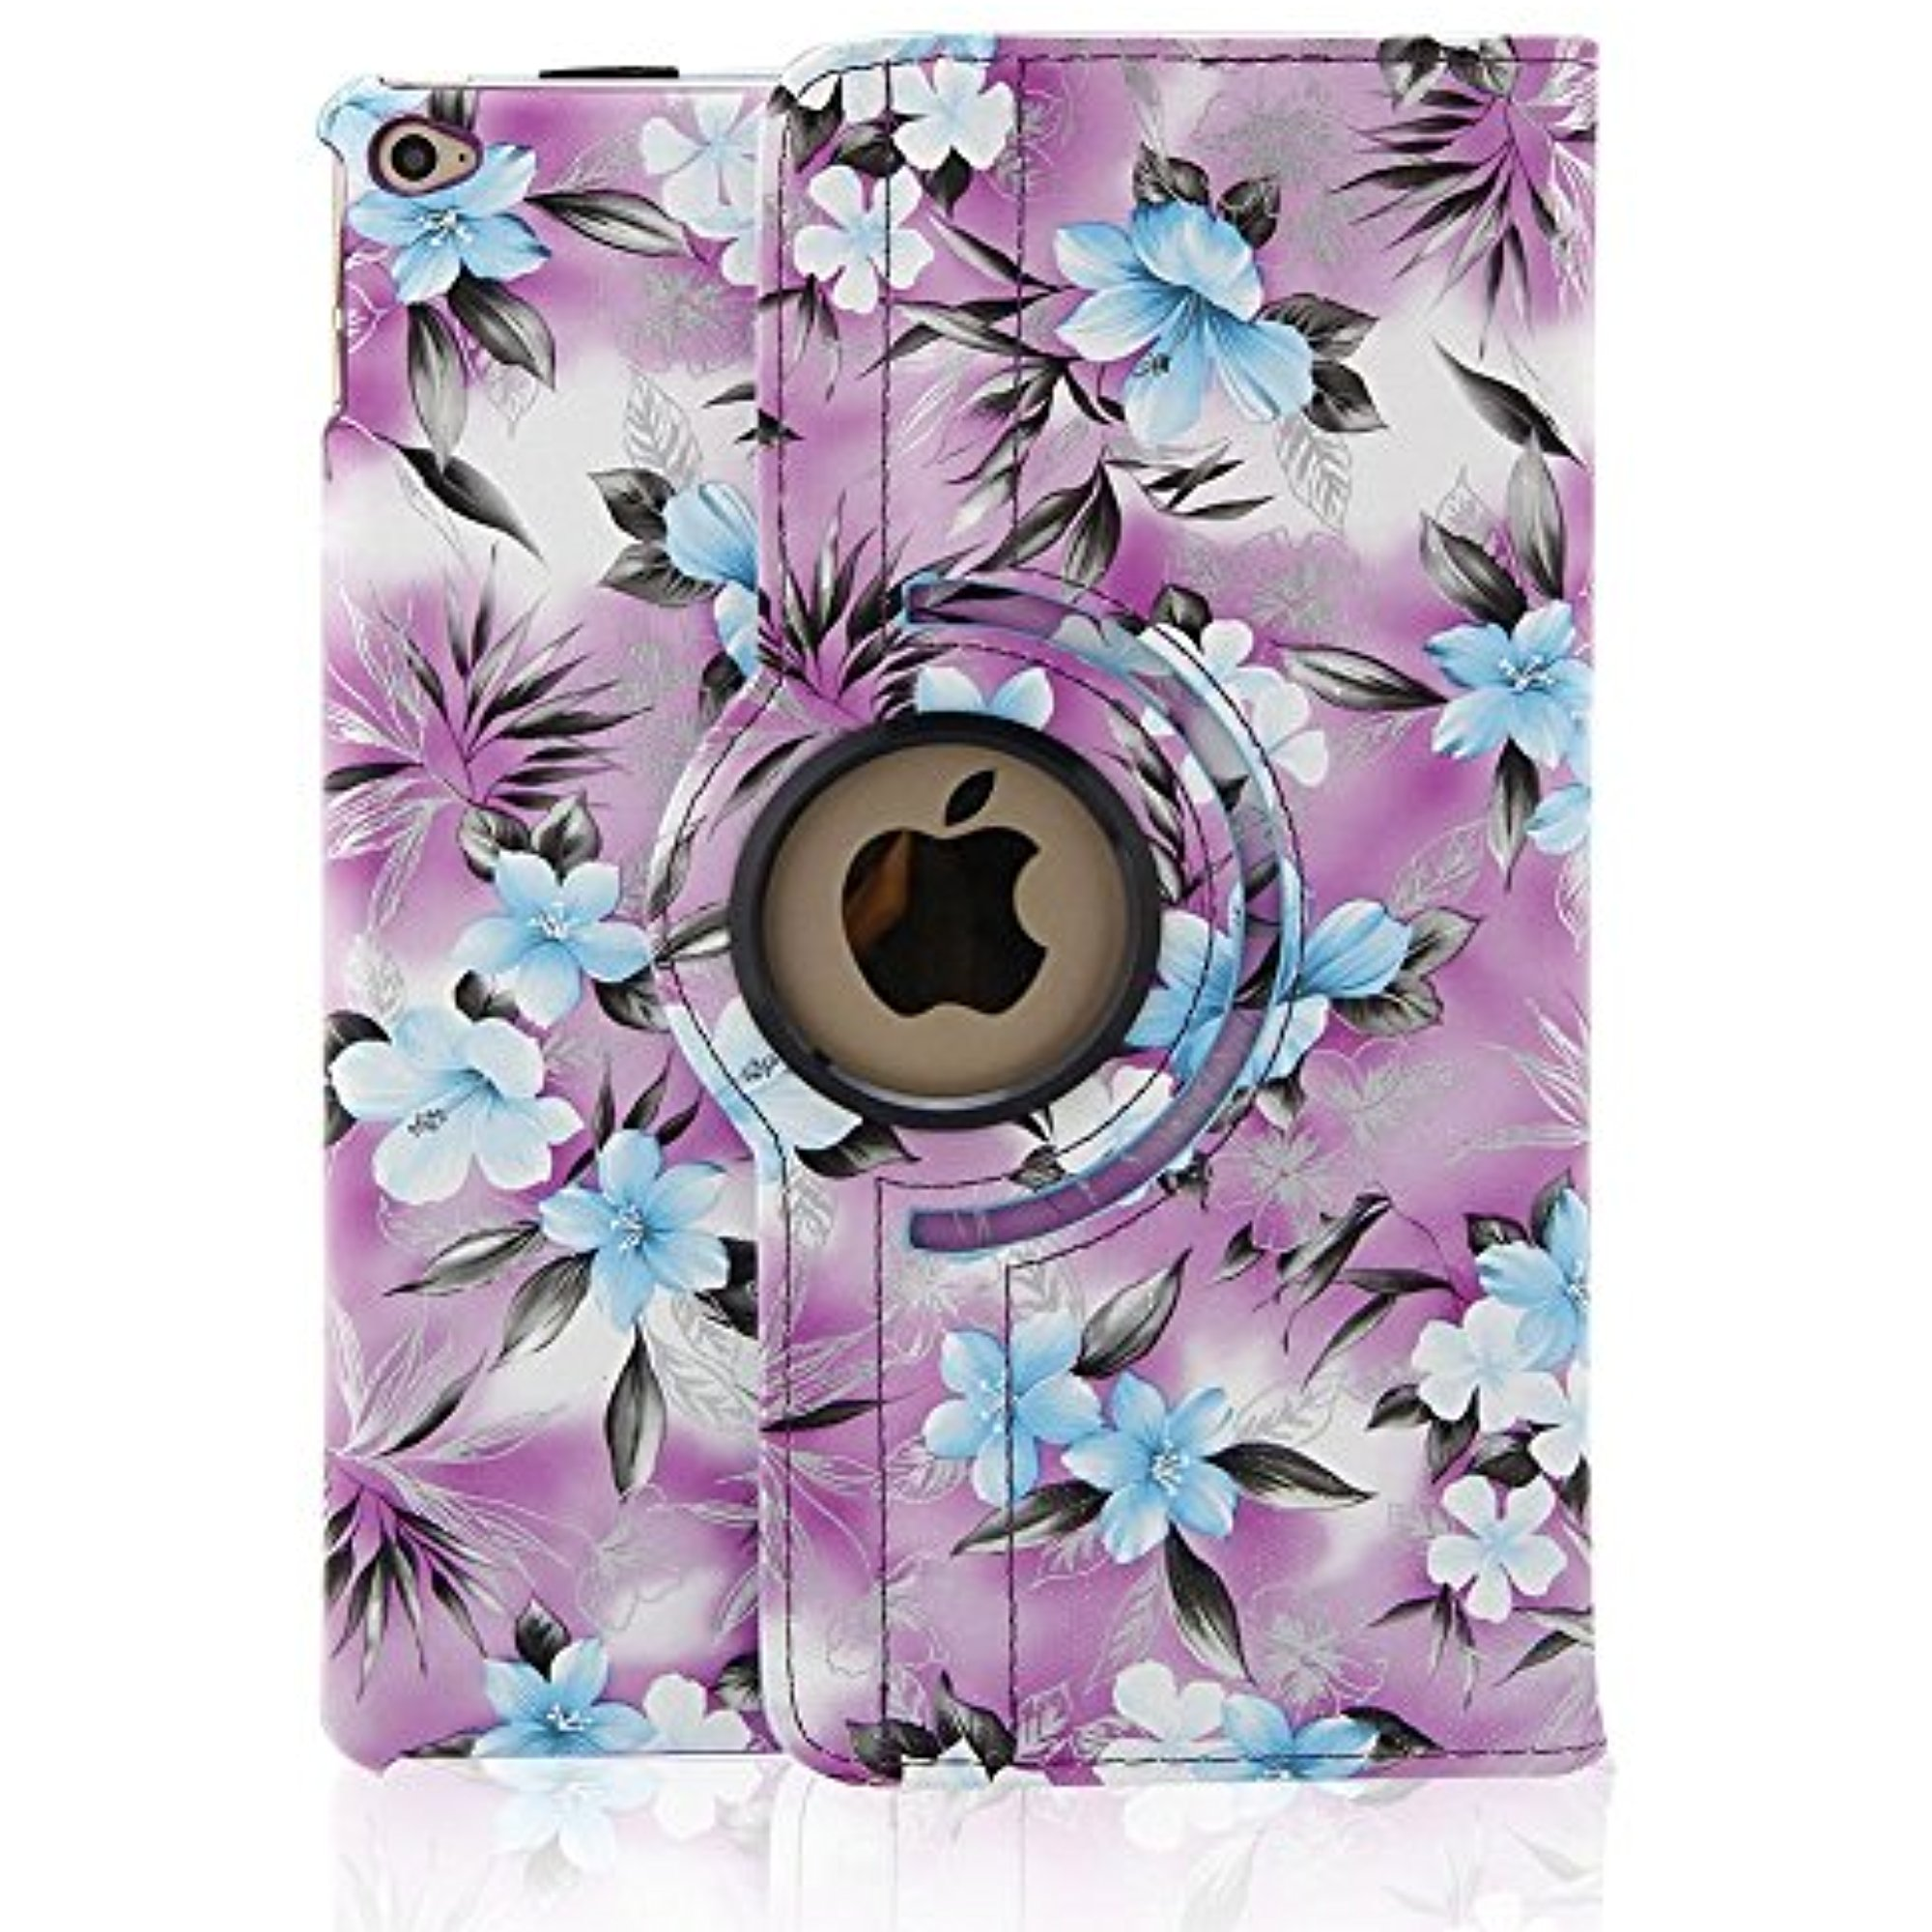 Eleoption iPad Pro 9.7 Case - ProCase Leather 360 Degree Rotating Stand Case Cover for Apple iPad Pro 9.7 Inch Case Support Smart Cover Open/Wake Function(Purple Camellia Floral Pattern)